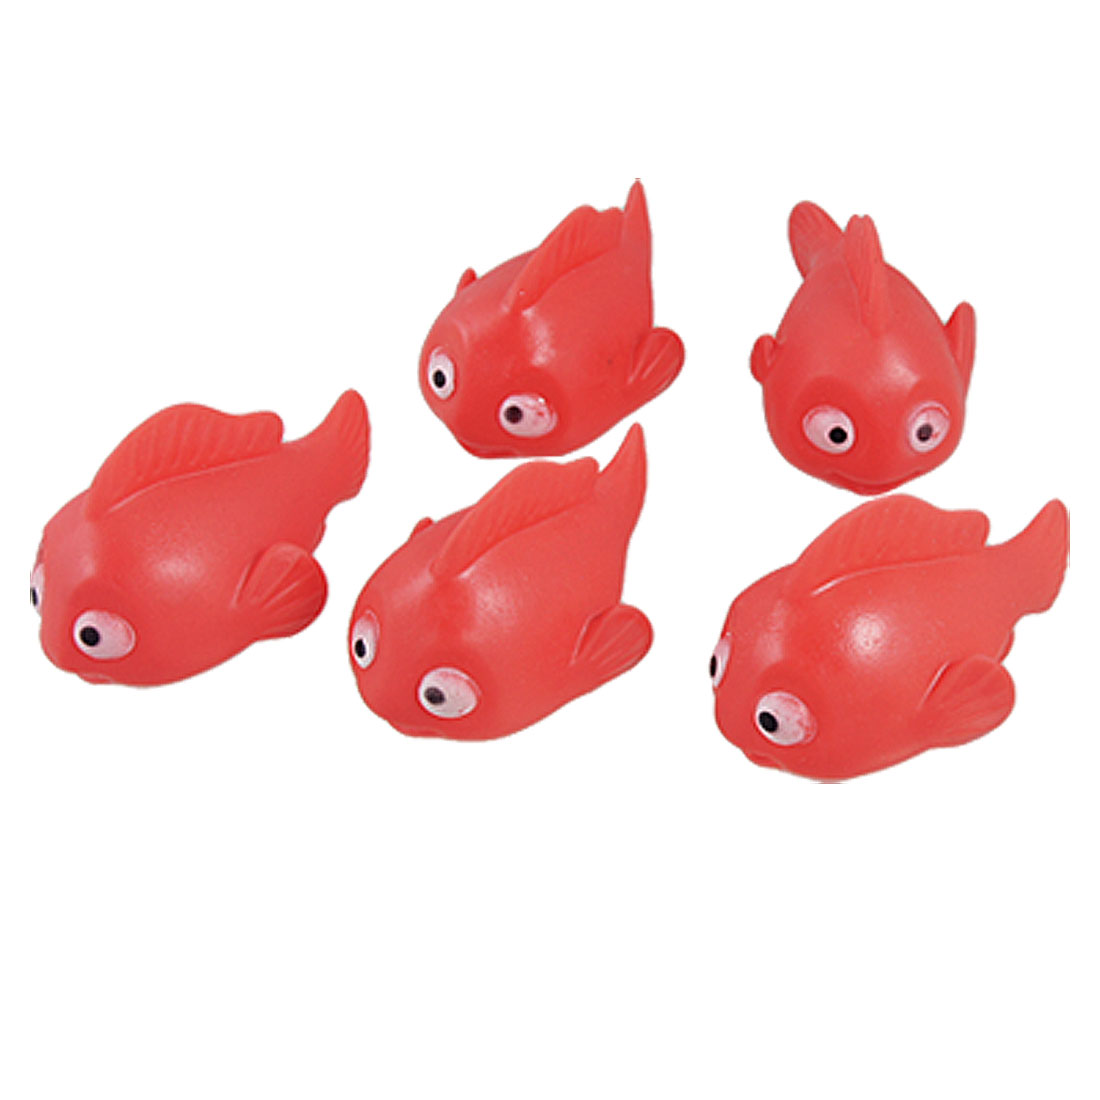 5 Pcs Red Soft Plastic Fish Squeeze Squeak Toy for Children